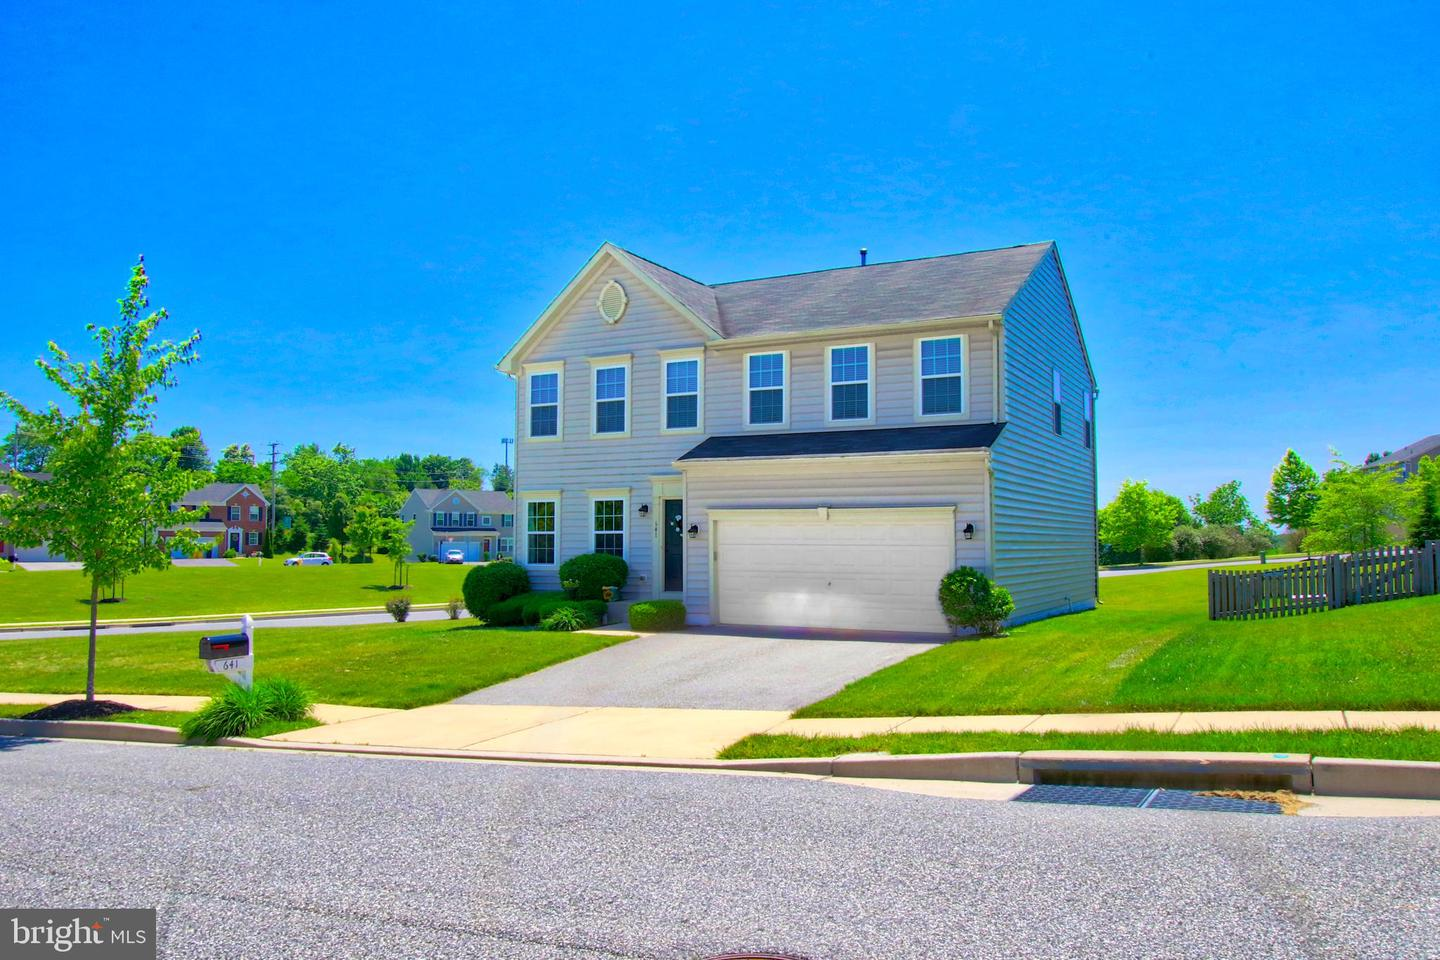 641 UPPER FIELD Circle  Westminster, Maryland 21158 Hoa Kỳ